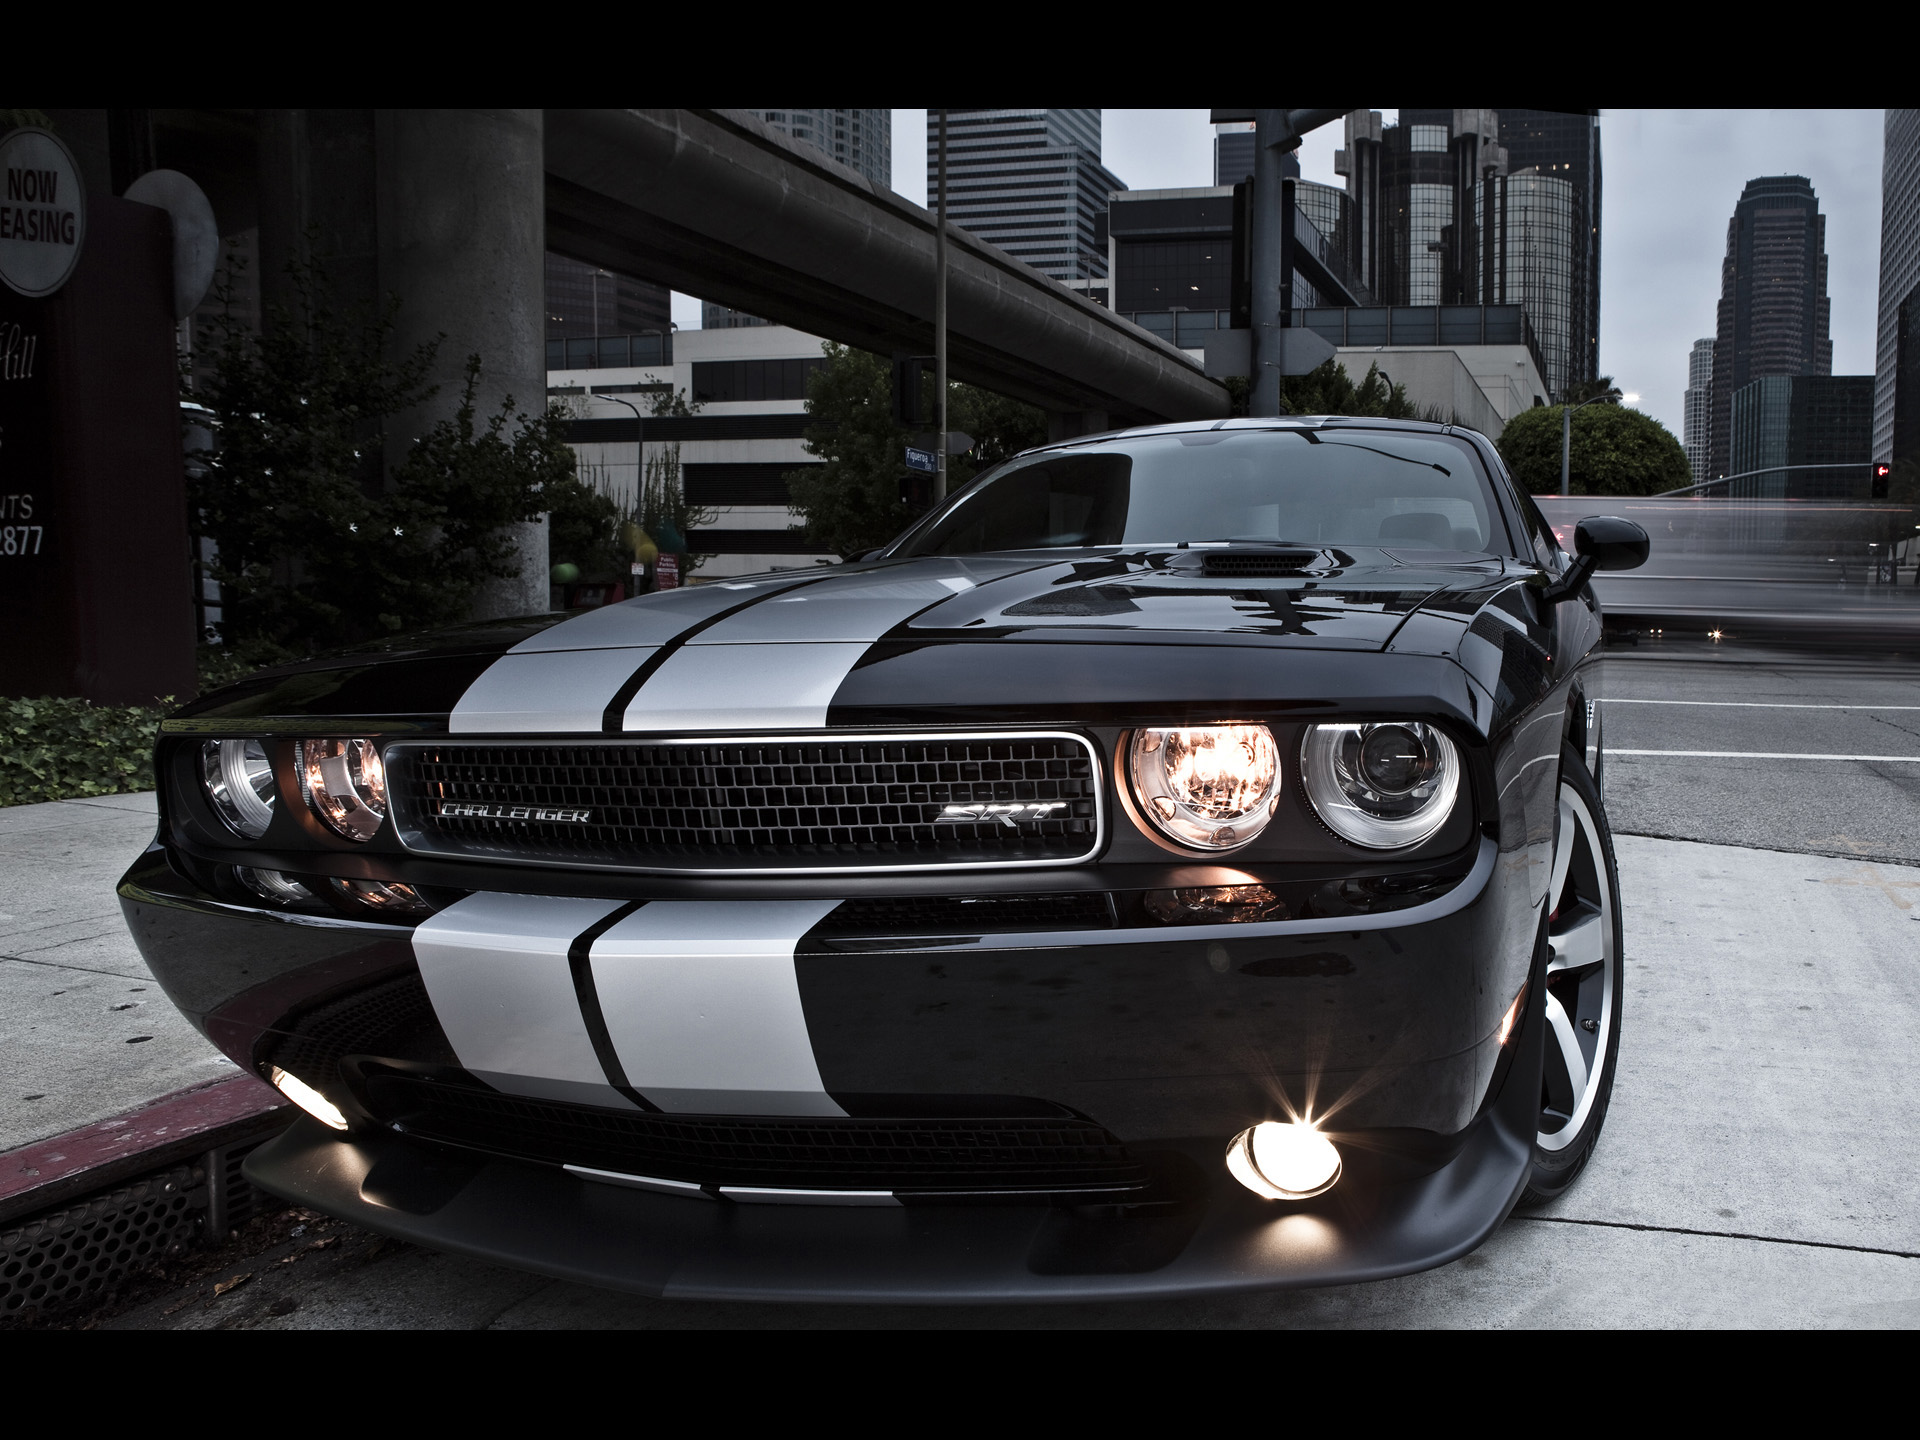 Exceptional Dodge Challenger Srt Front Wallpapers And Stock Photos With Dodge Challenger  Black Wallpaper